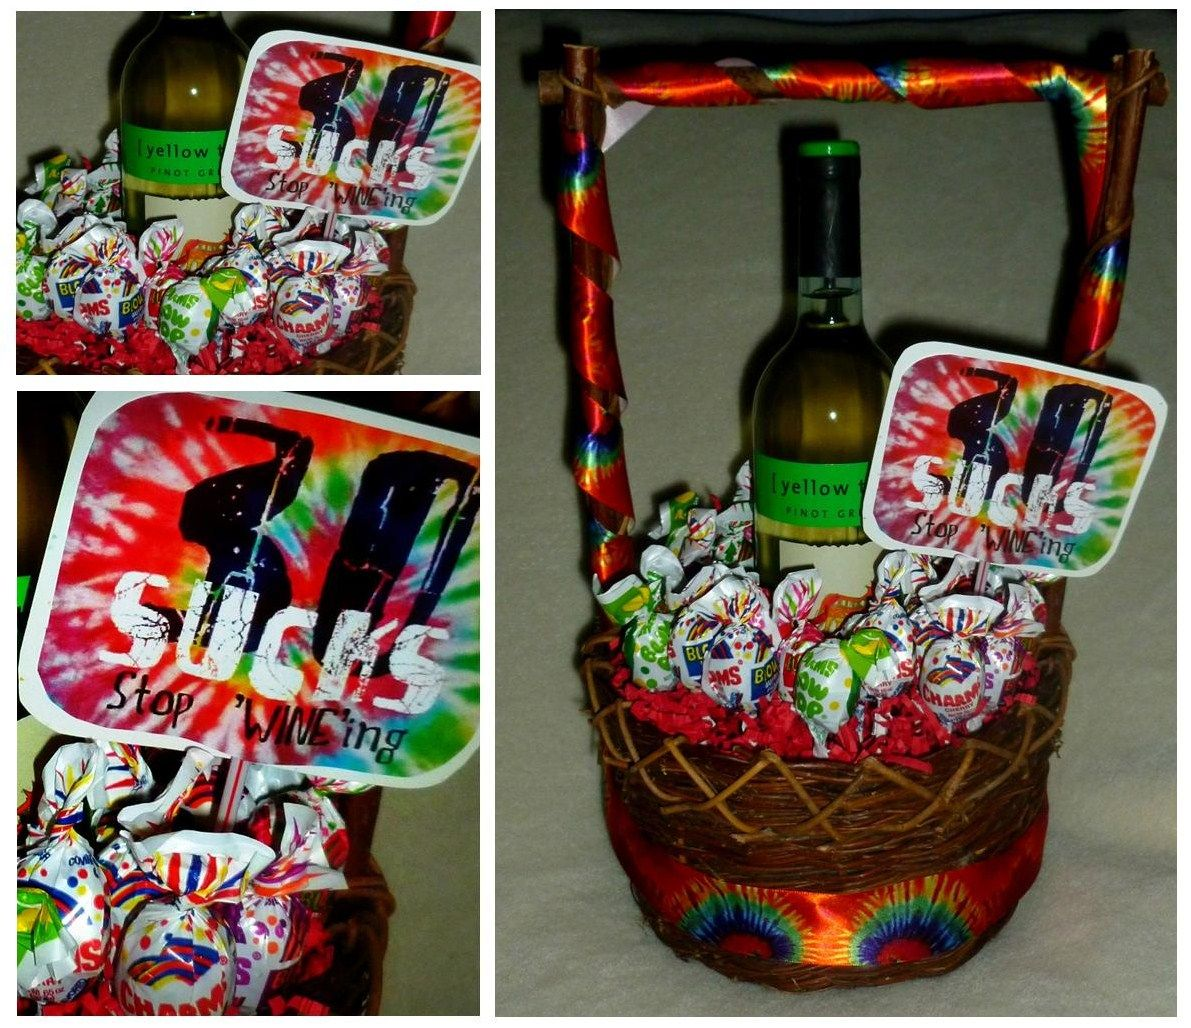 Turning 30 Birthday Basket: 30 'SUCKS', Stop 'WINE'ing! Wine Gift Basket For 30th